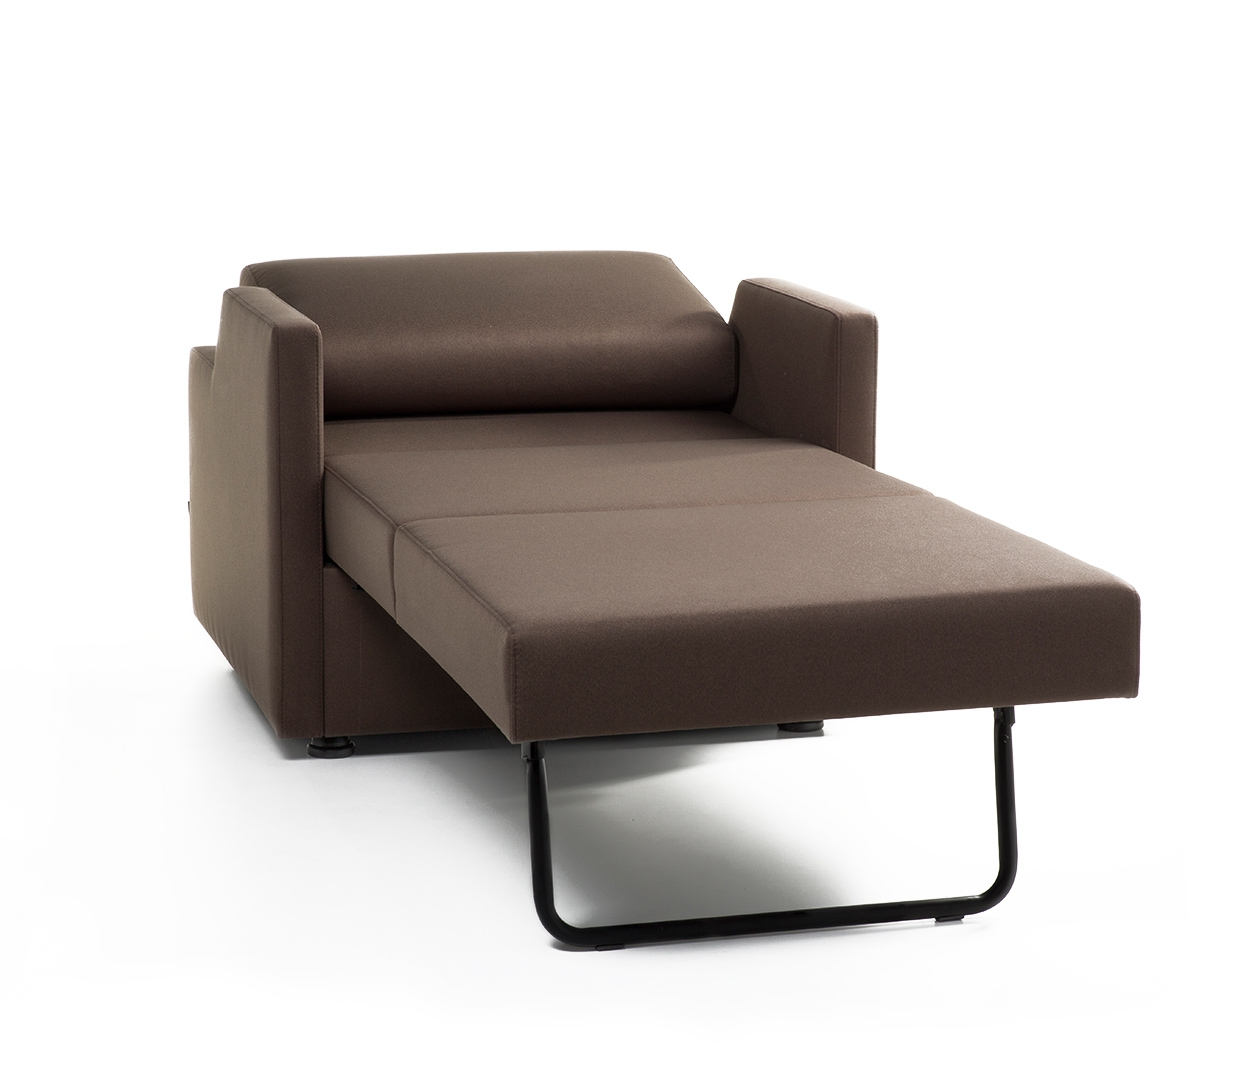 Fold Sofa Bed Comseat Australia